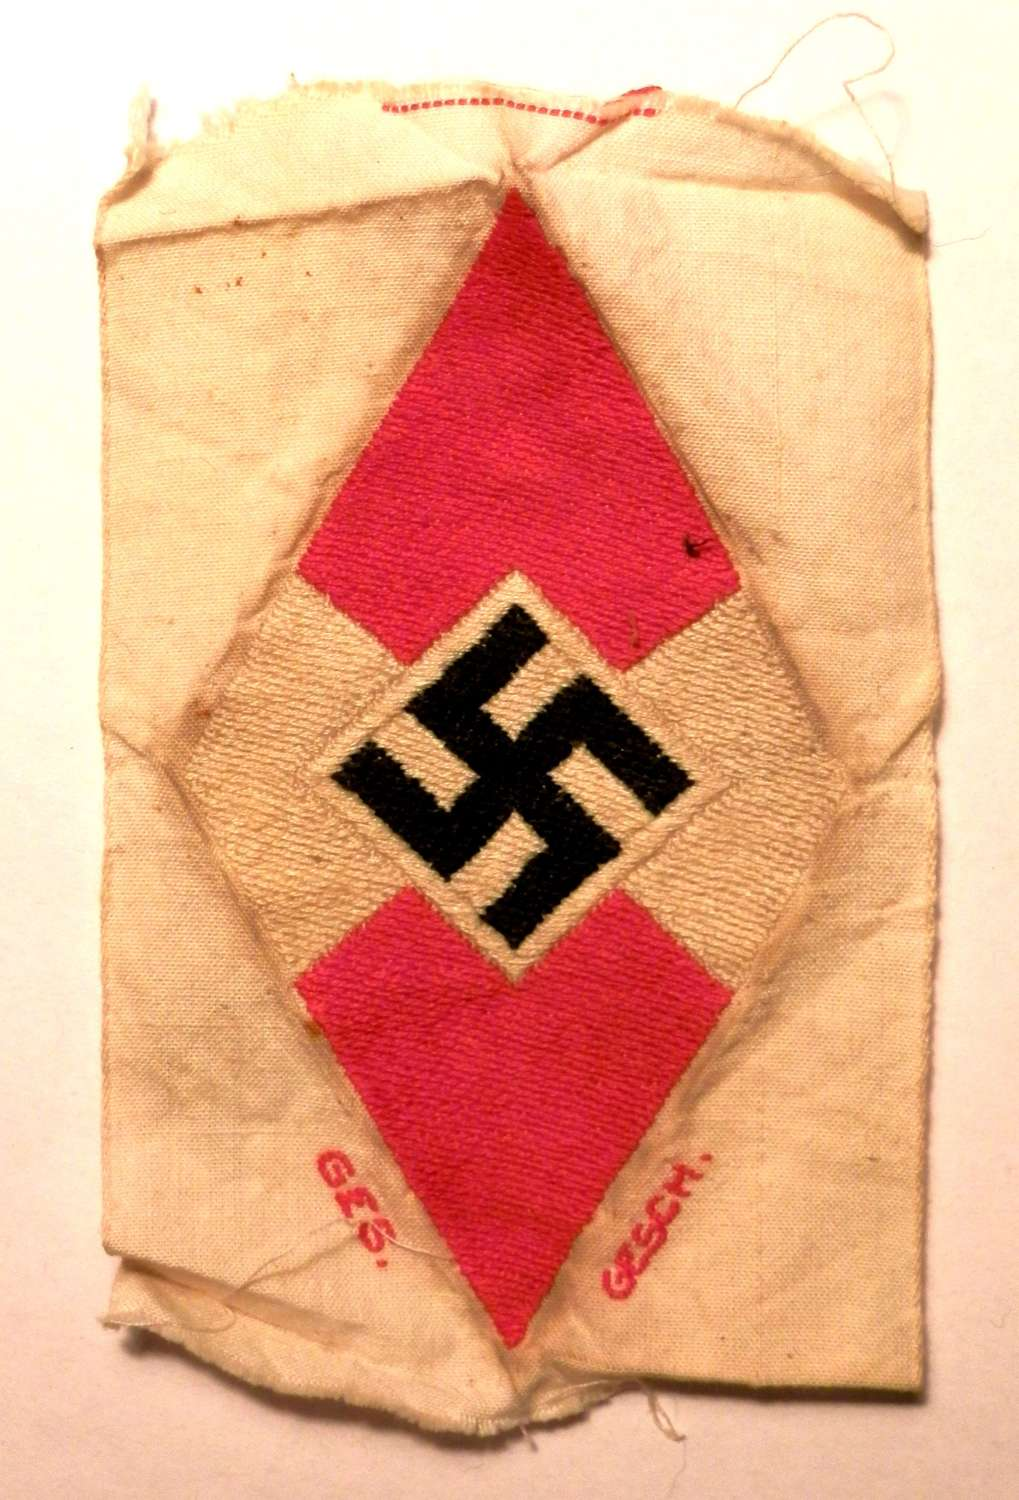 Hitler Youth Cloth Bevo Insignia Badge.